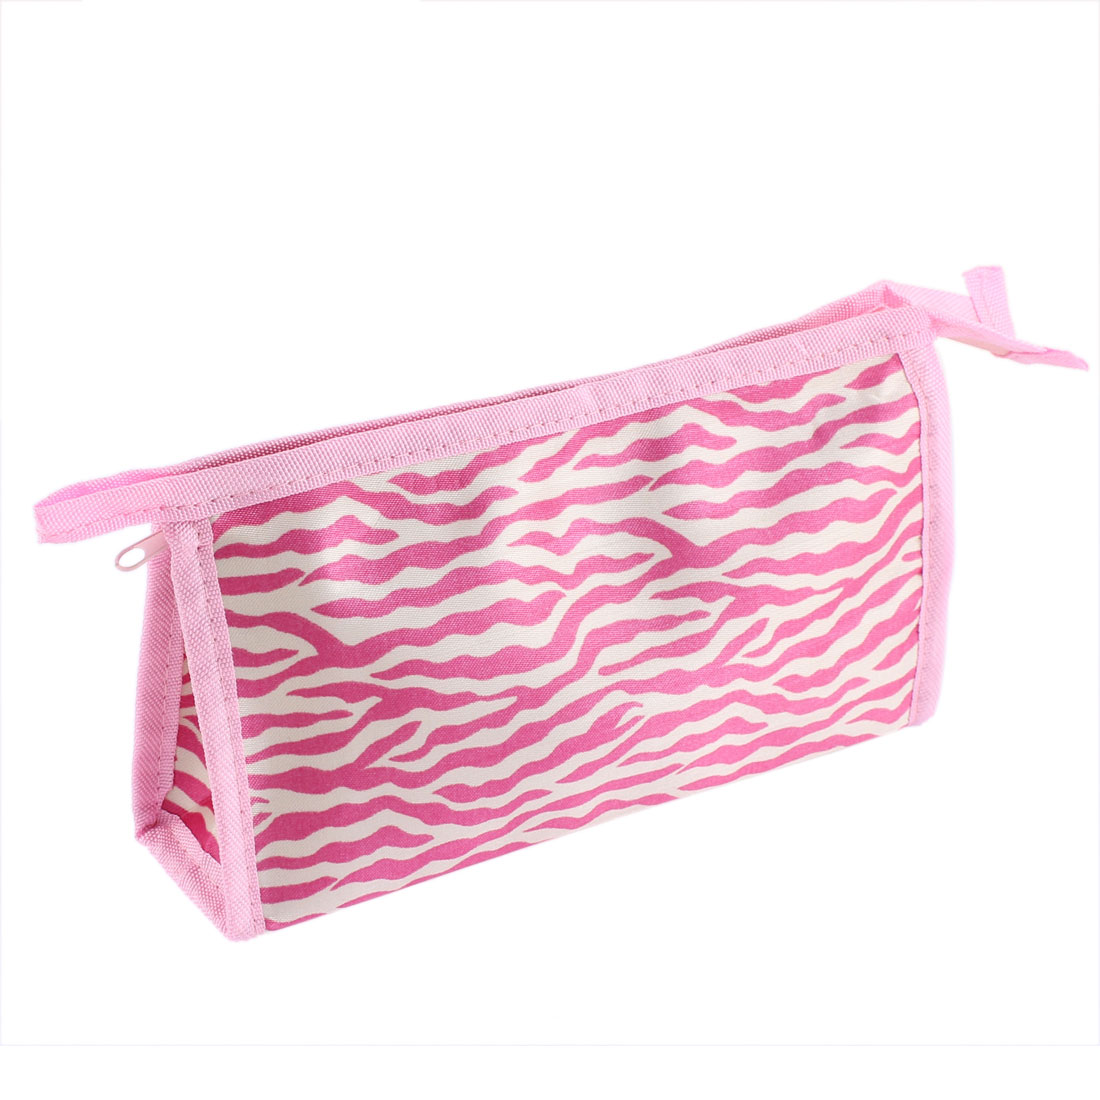 Women Water Wave Pattern Zipper Cosmetic Bag Single Pocket Beauty Makeup Hand Case Container Organizer Pink White